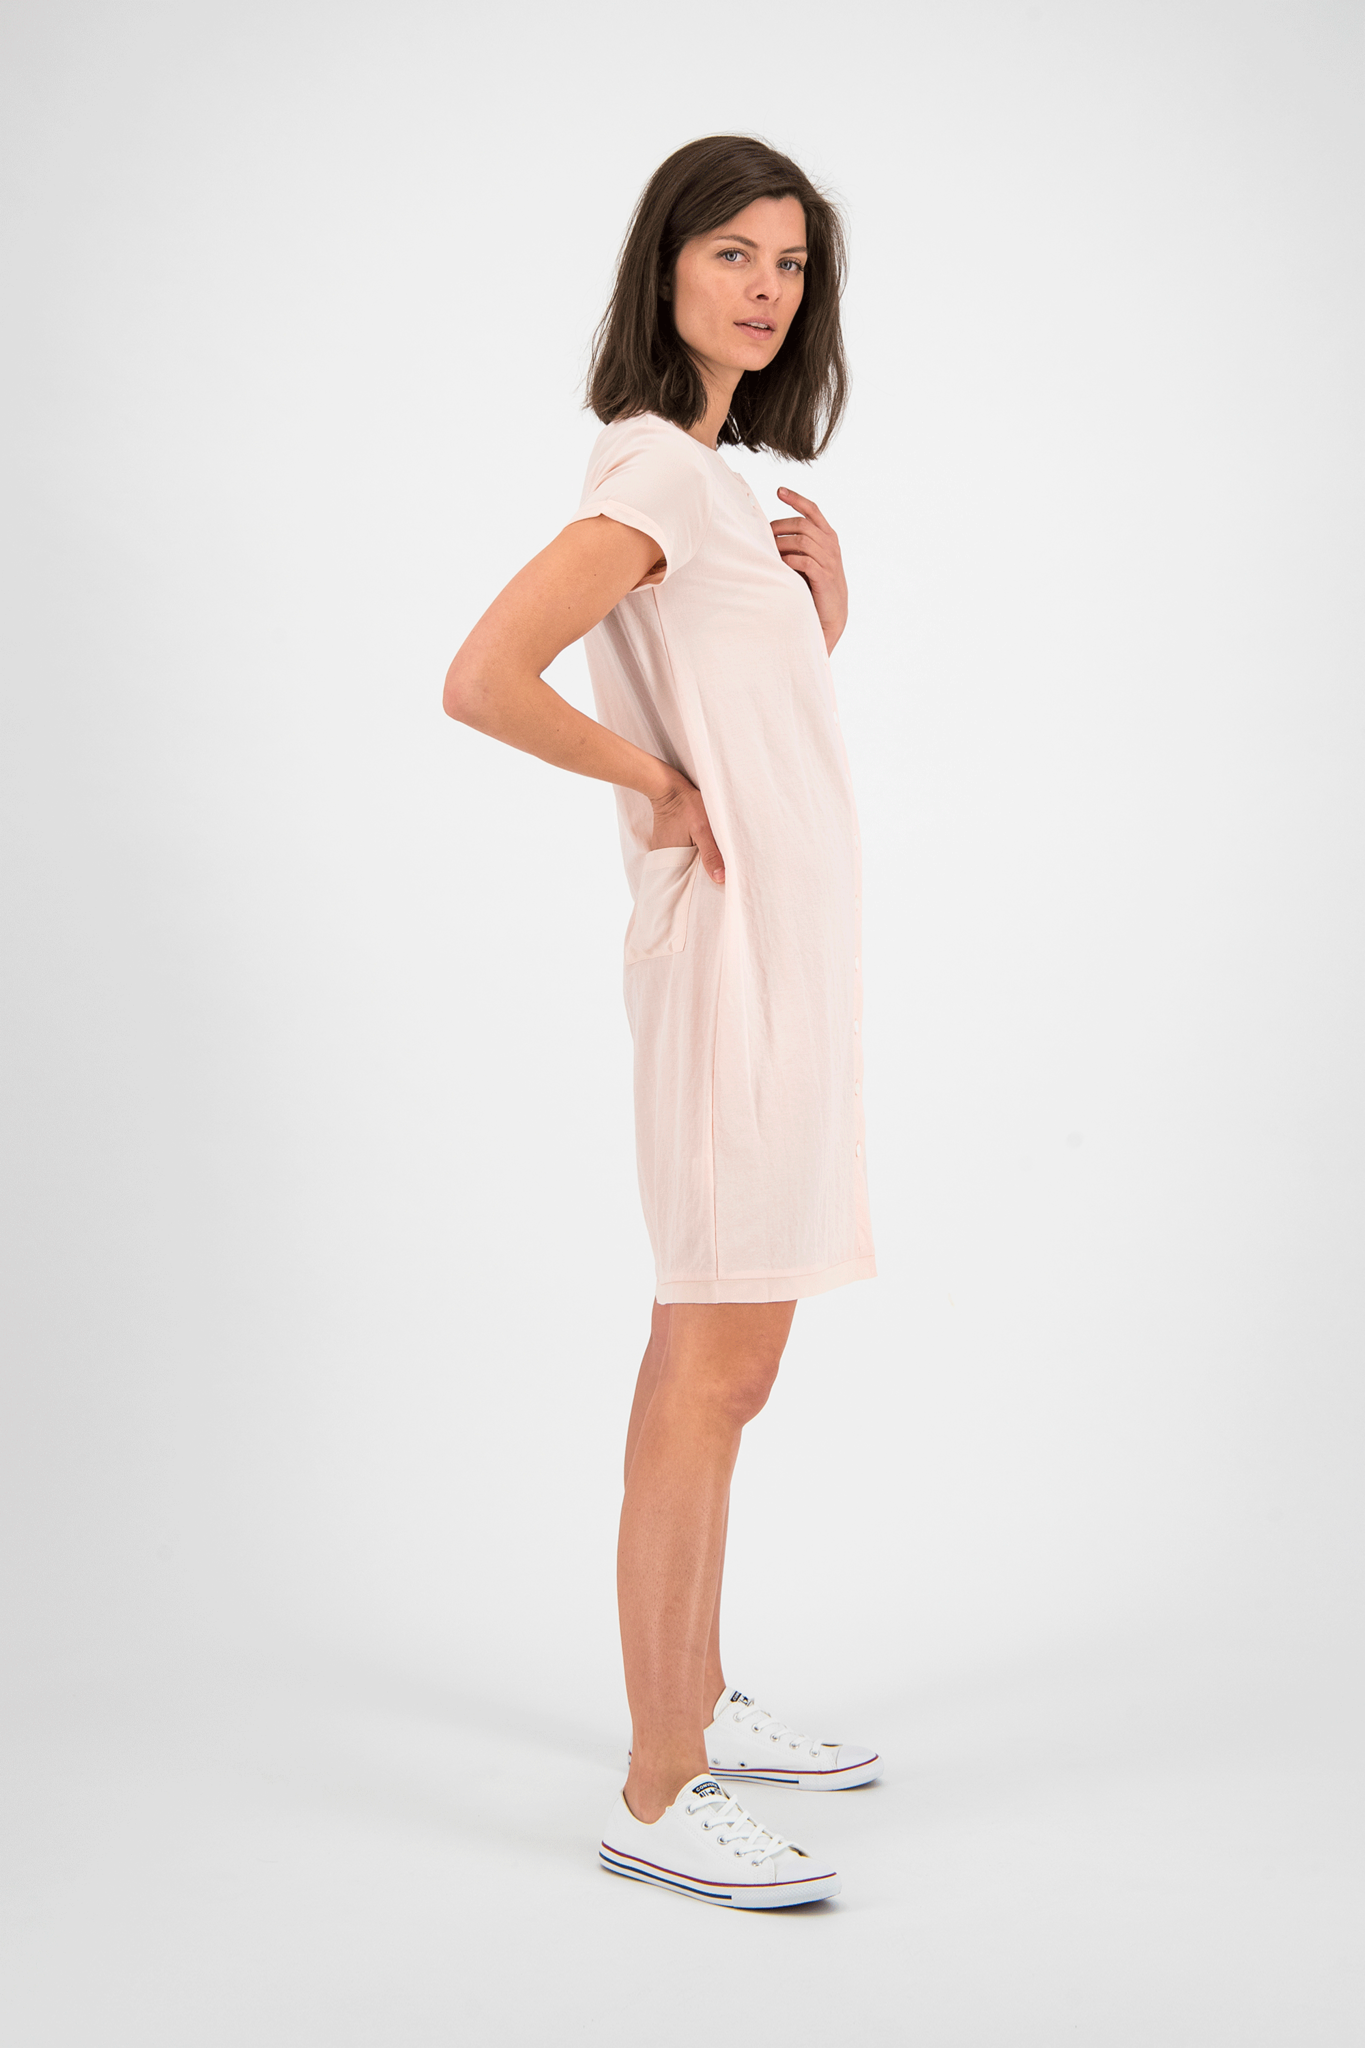 SYLVER Crêpe Stretch Dress-Blouse - Zalmroze